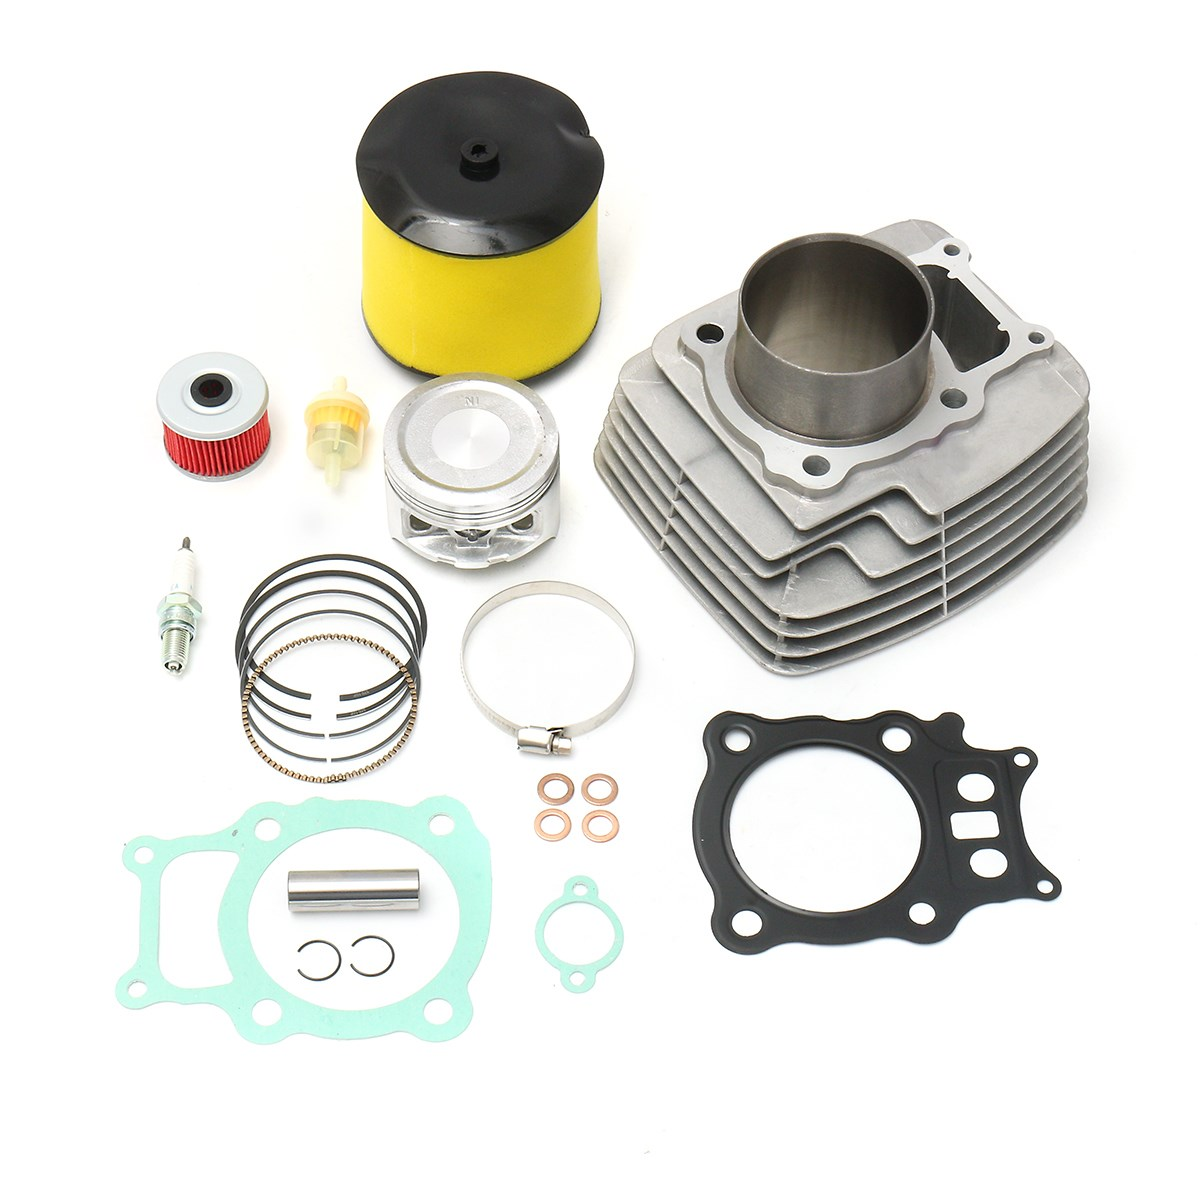 ATV Cylinder Piston For Spark Plug Oil Fuel Filter For Honda Rancher/TRX  TRX350/TRX 350-in ATV Parts & Accessories from Automobiles & Motorcycles on  ...